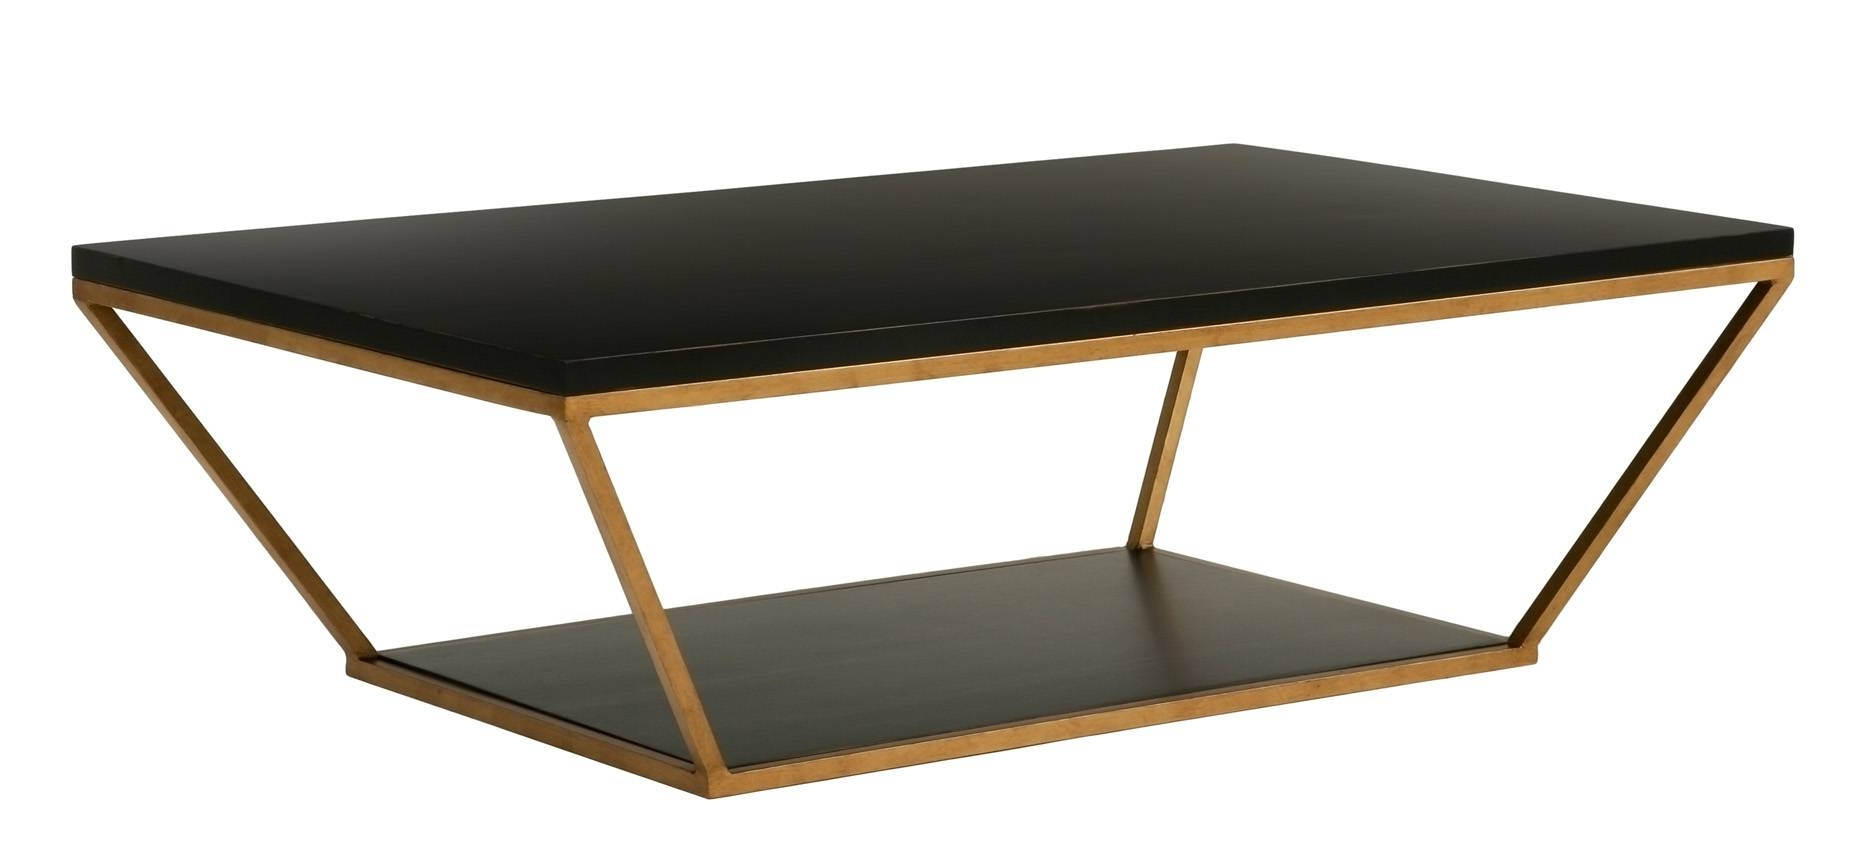 Big Dining Coffee Table With Regard To Big Black Coffee Tables (View 13 of 30)